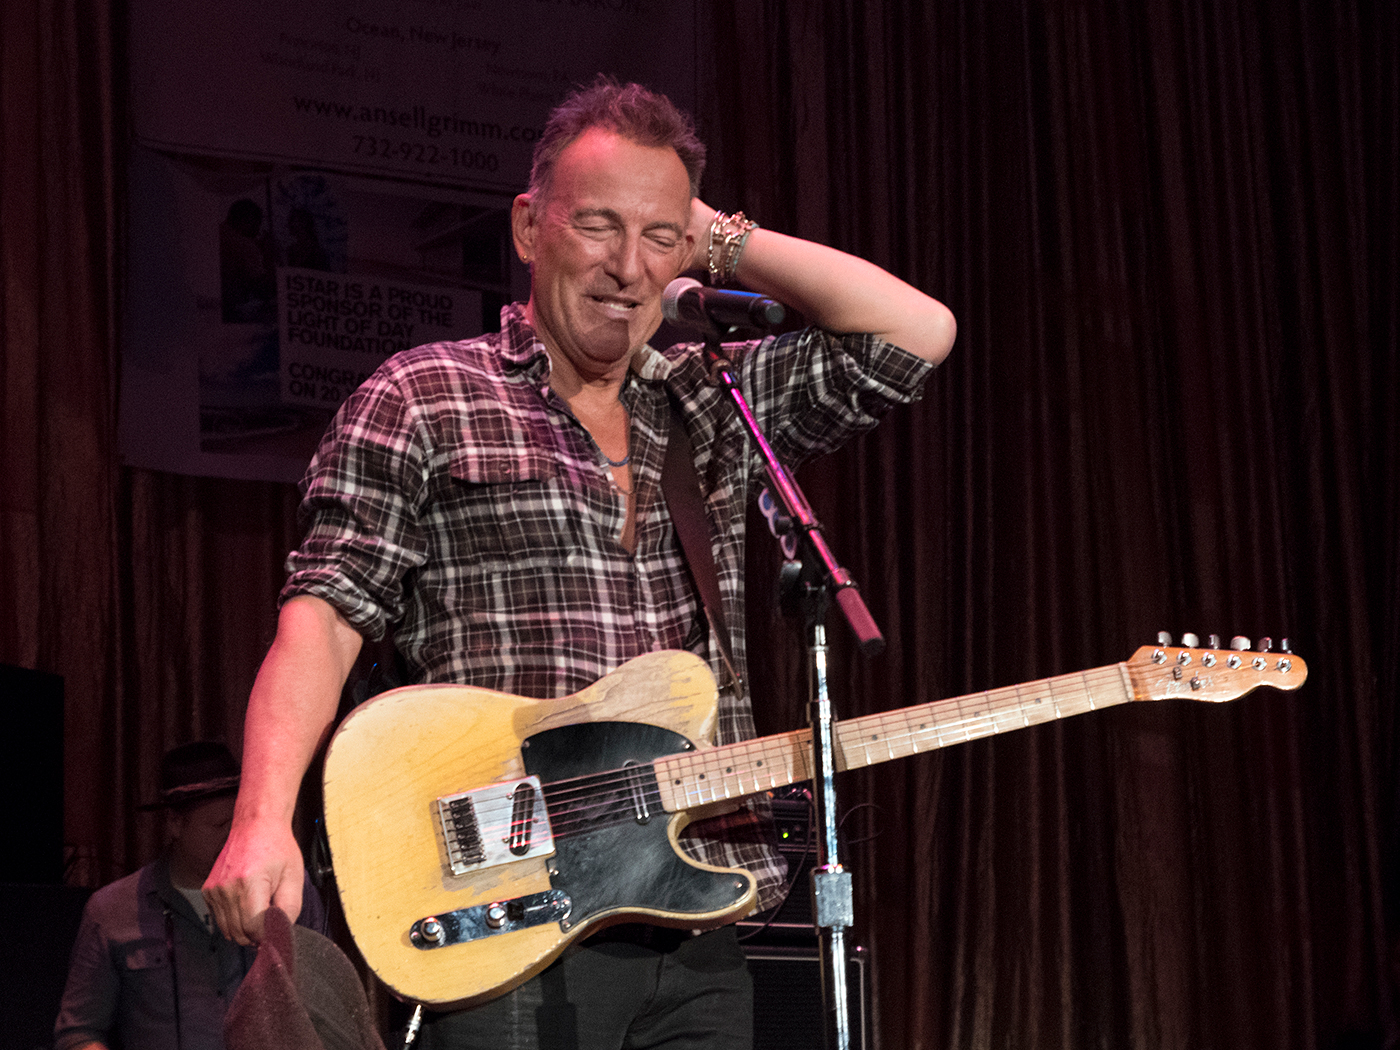 Watch Bruce Springsteen play a surprise charity show in Asbury Park - UNCUT